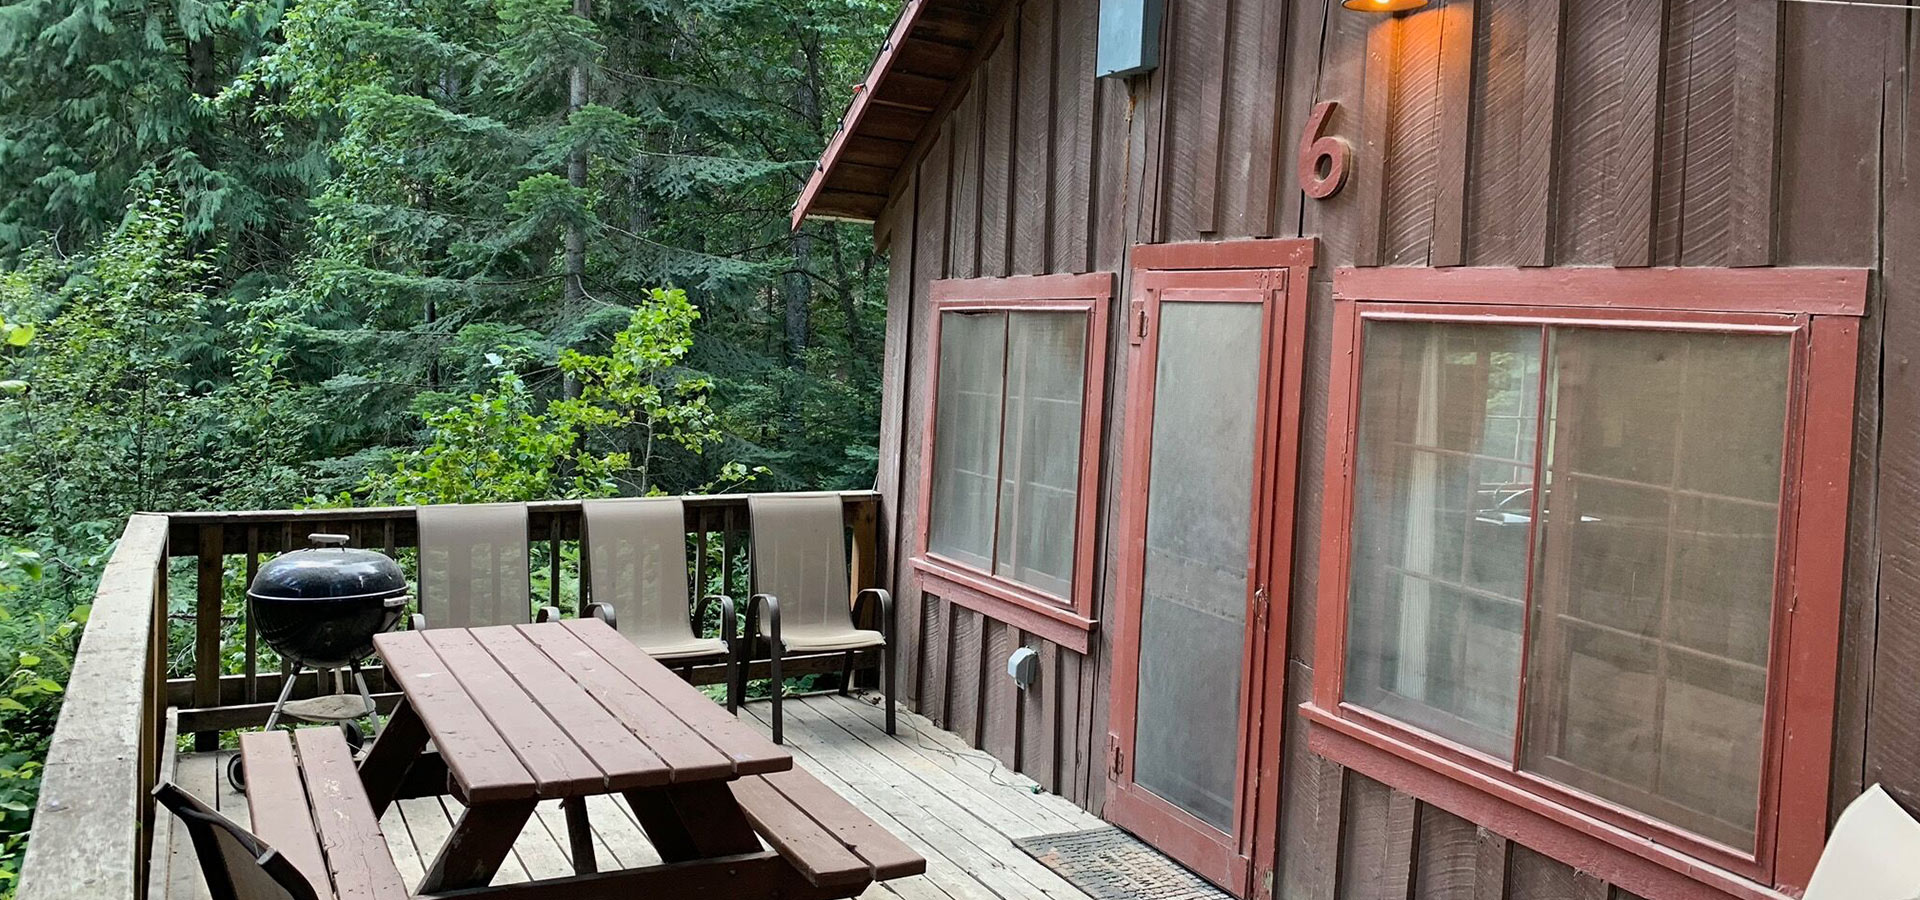 Exterior of cabin 6